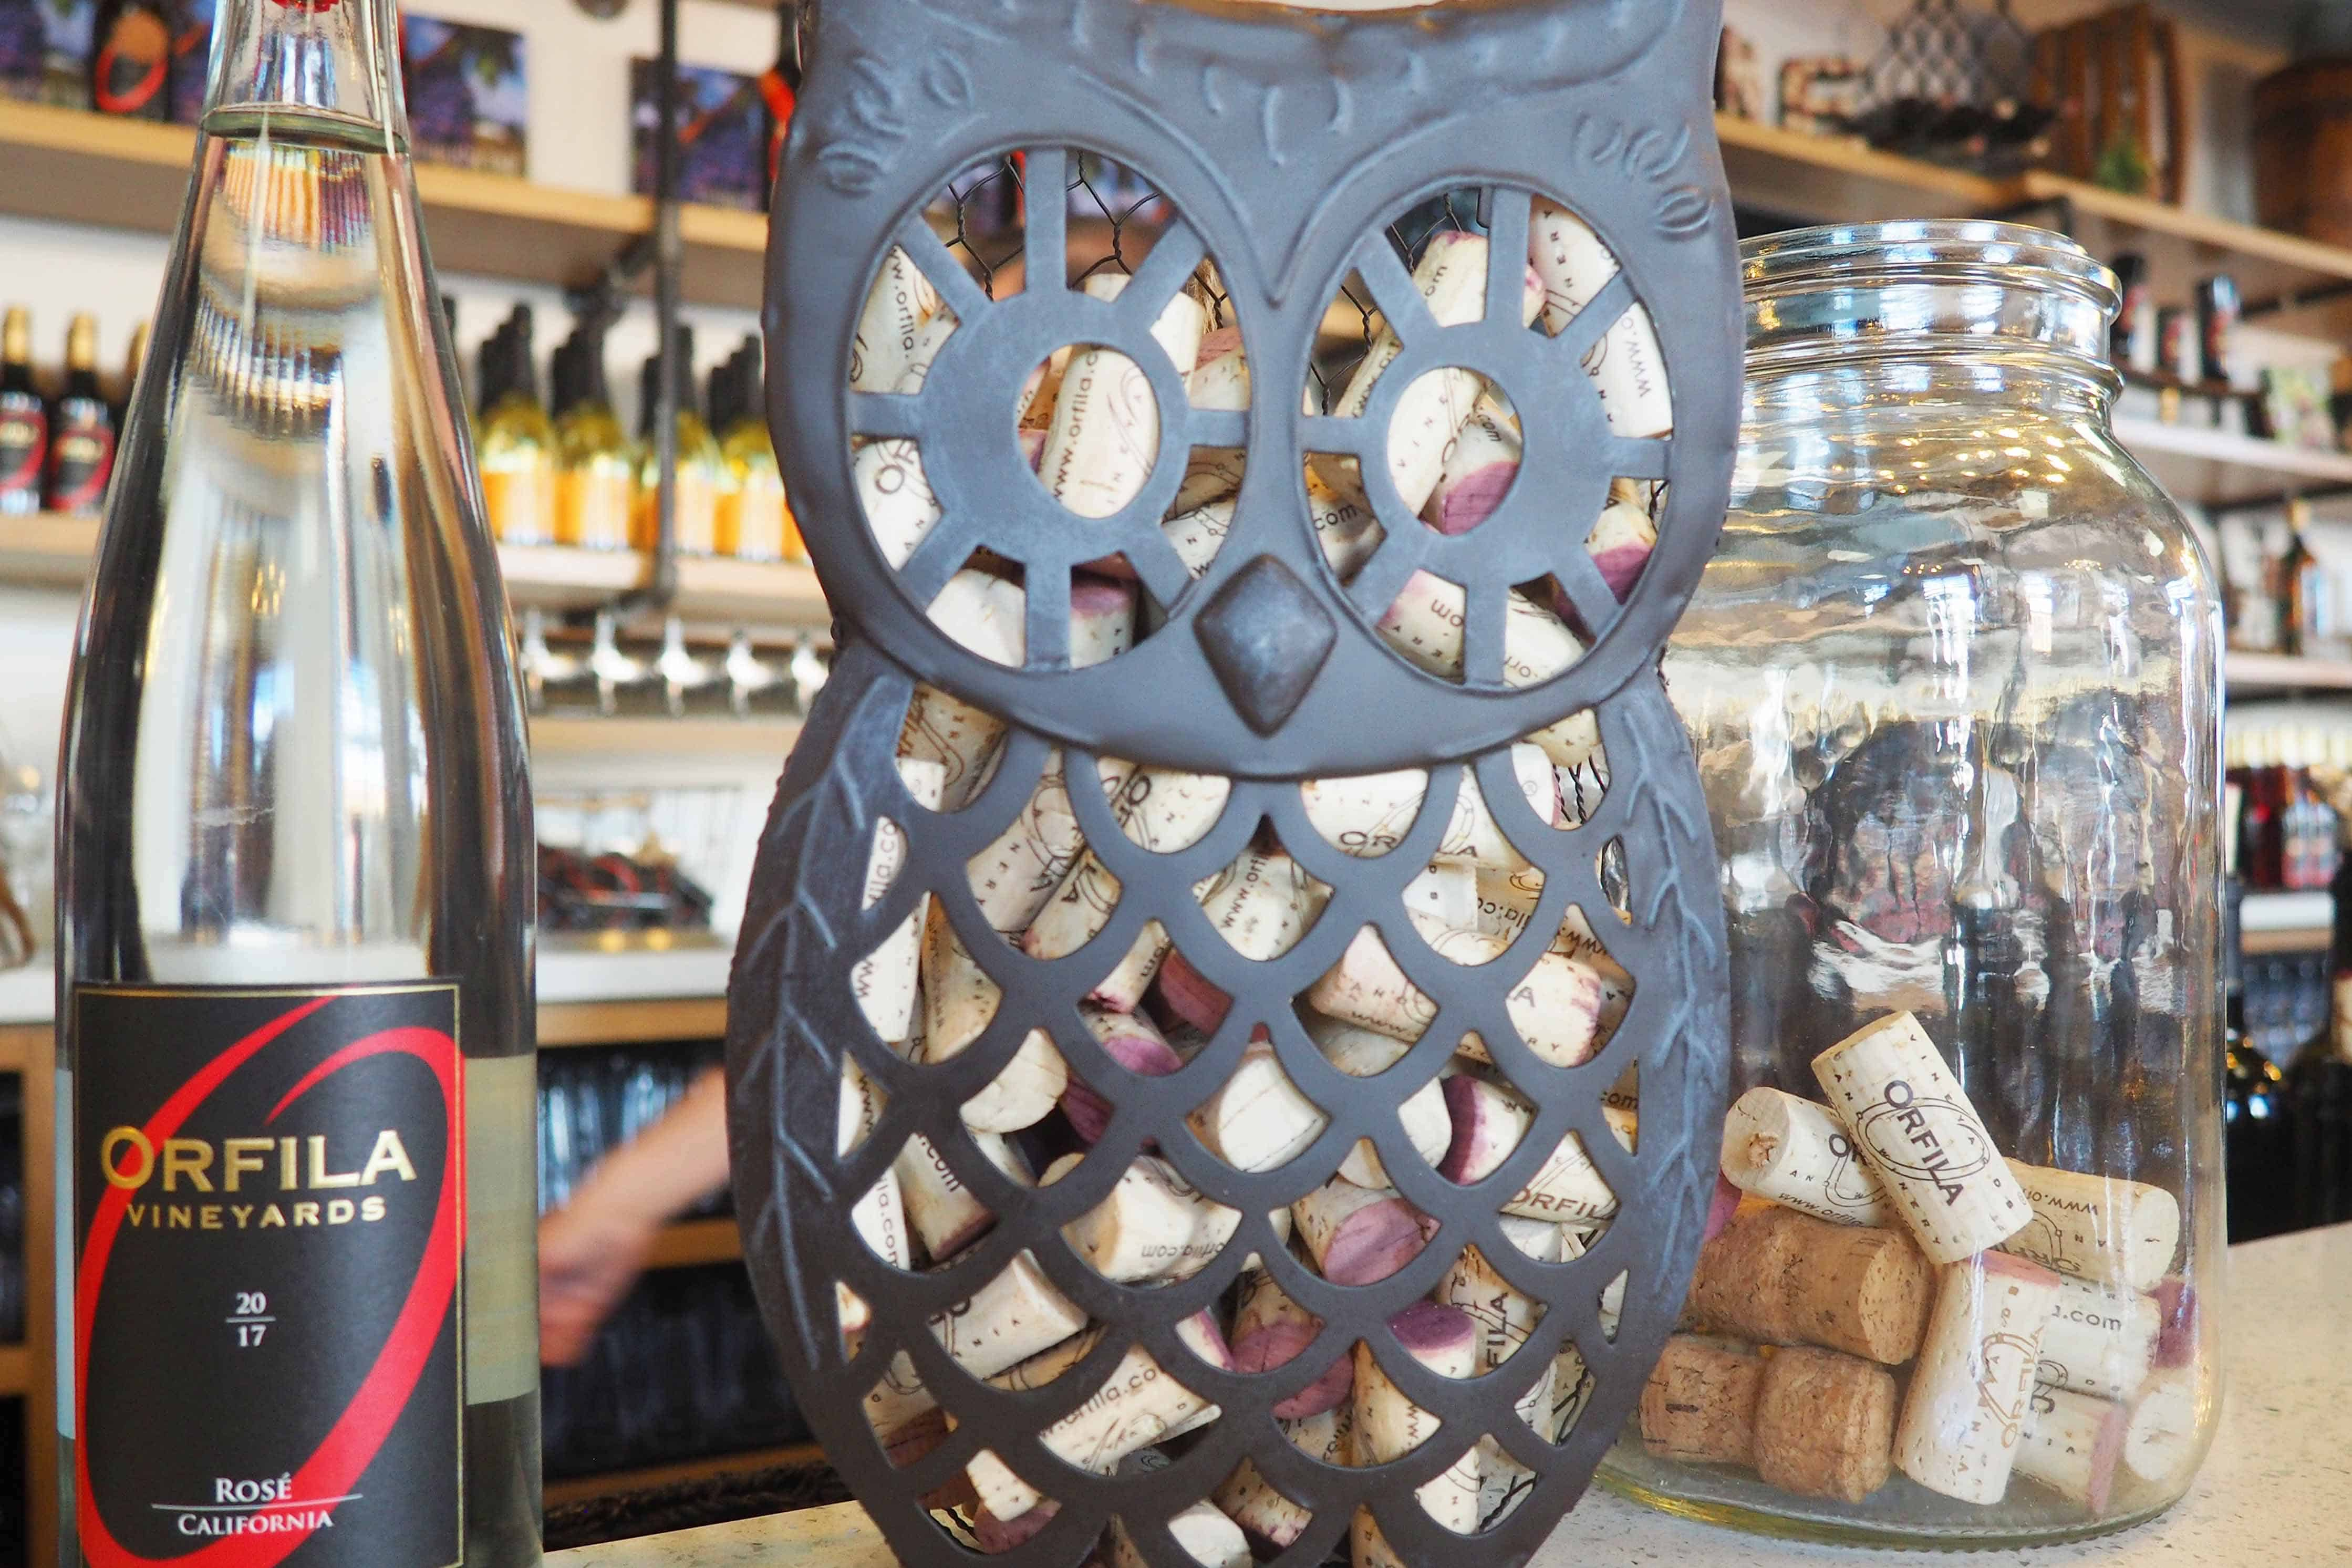 Orfila Vineyards & Winery Decorative Owl Cork Holder